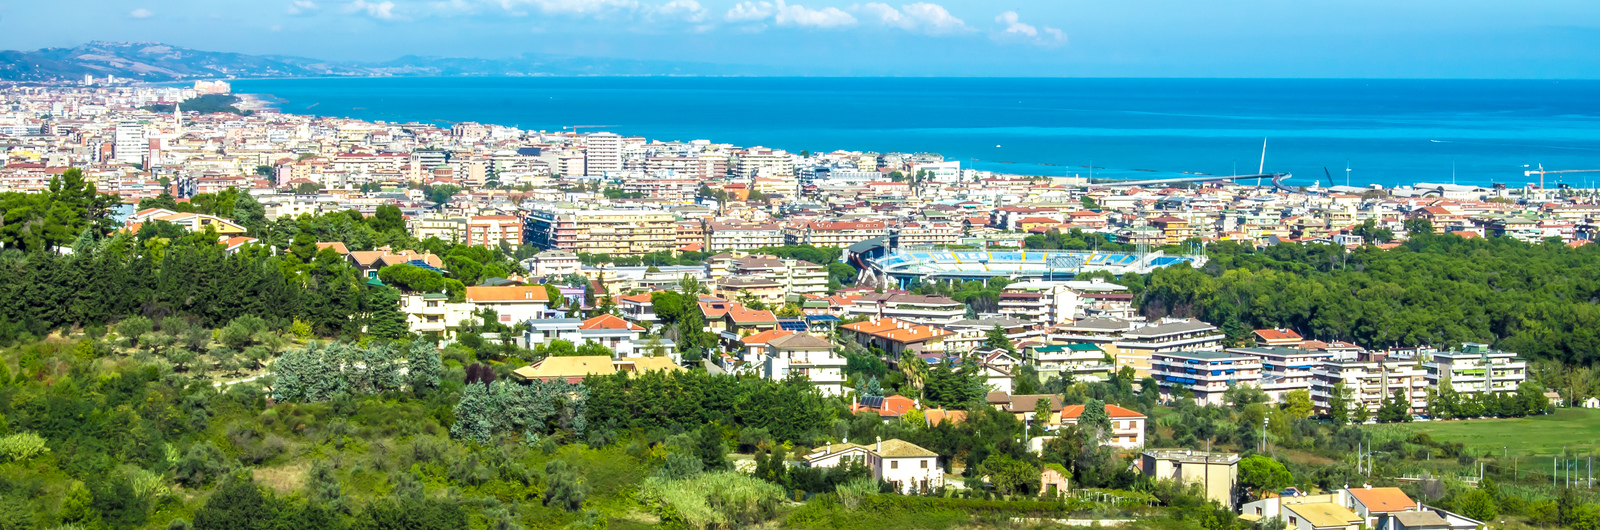 pescara city header